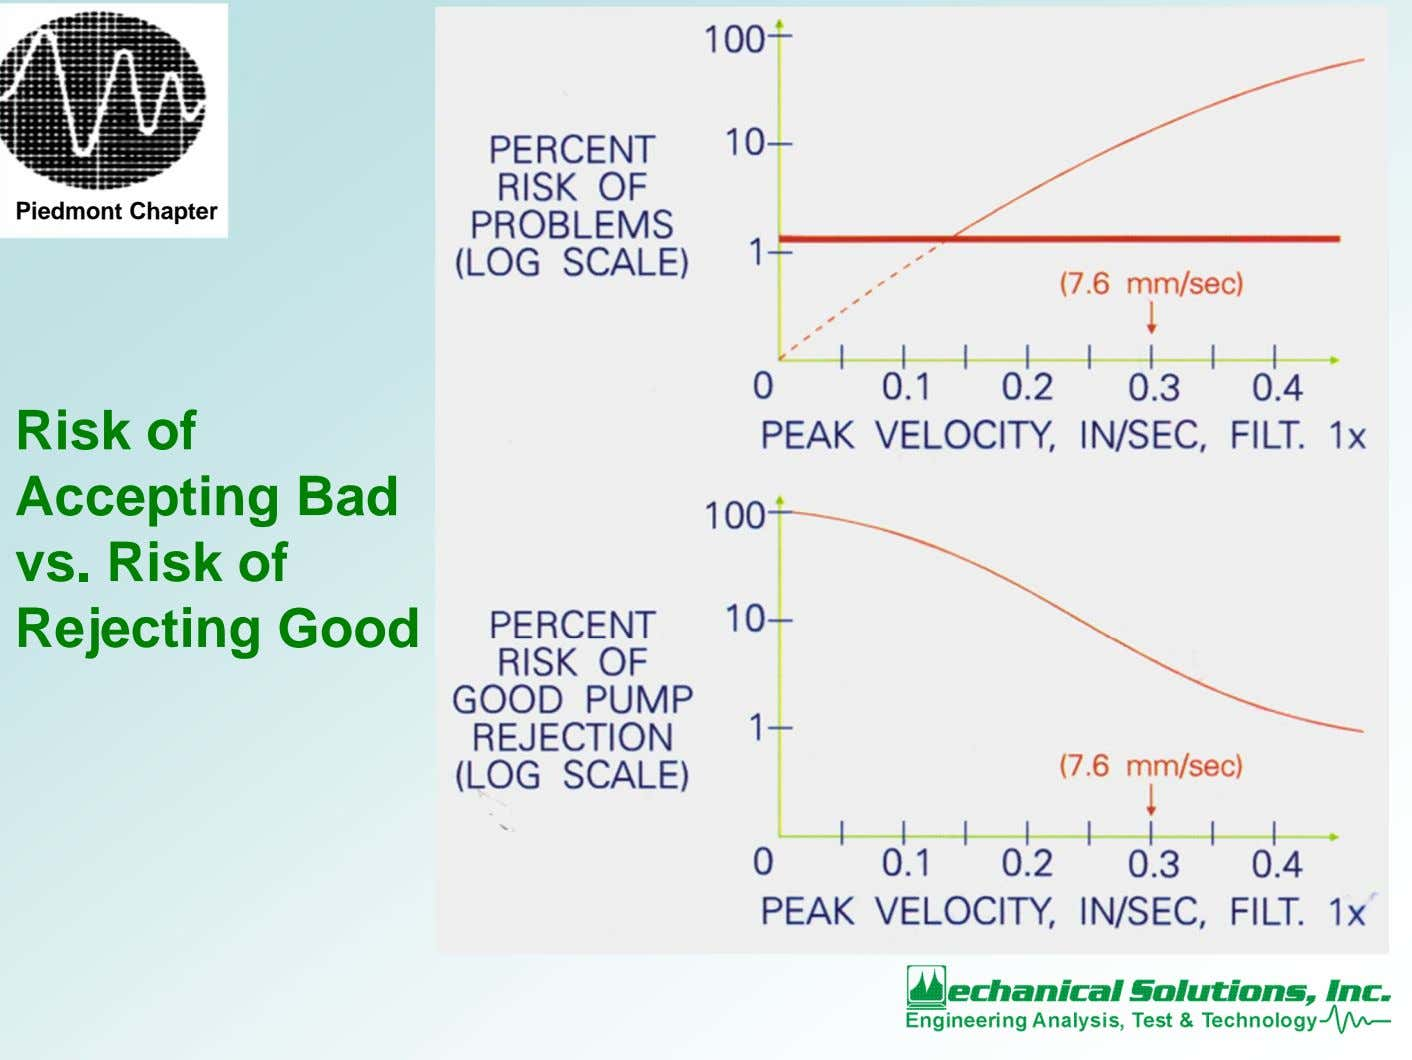 Piedmont Chapter Risk of Accepting Bad vs. Risk of Rejecting Good